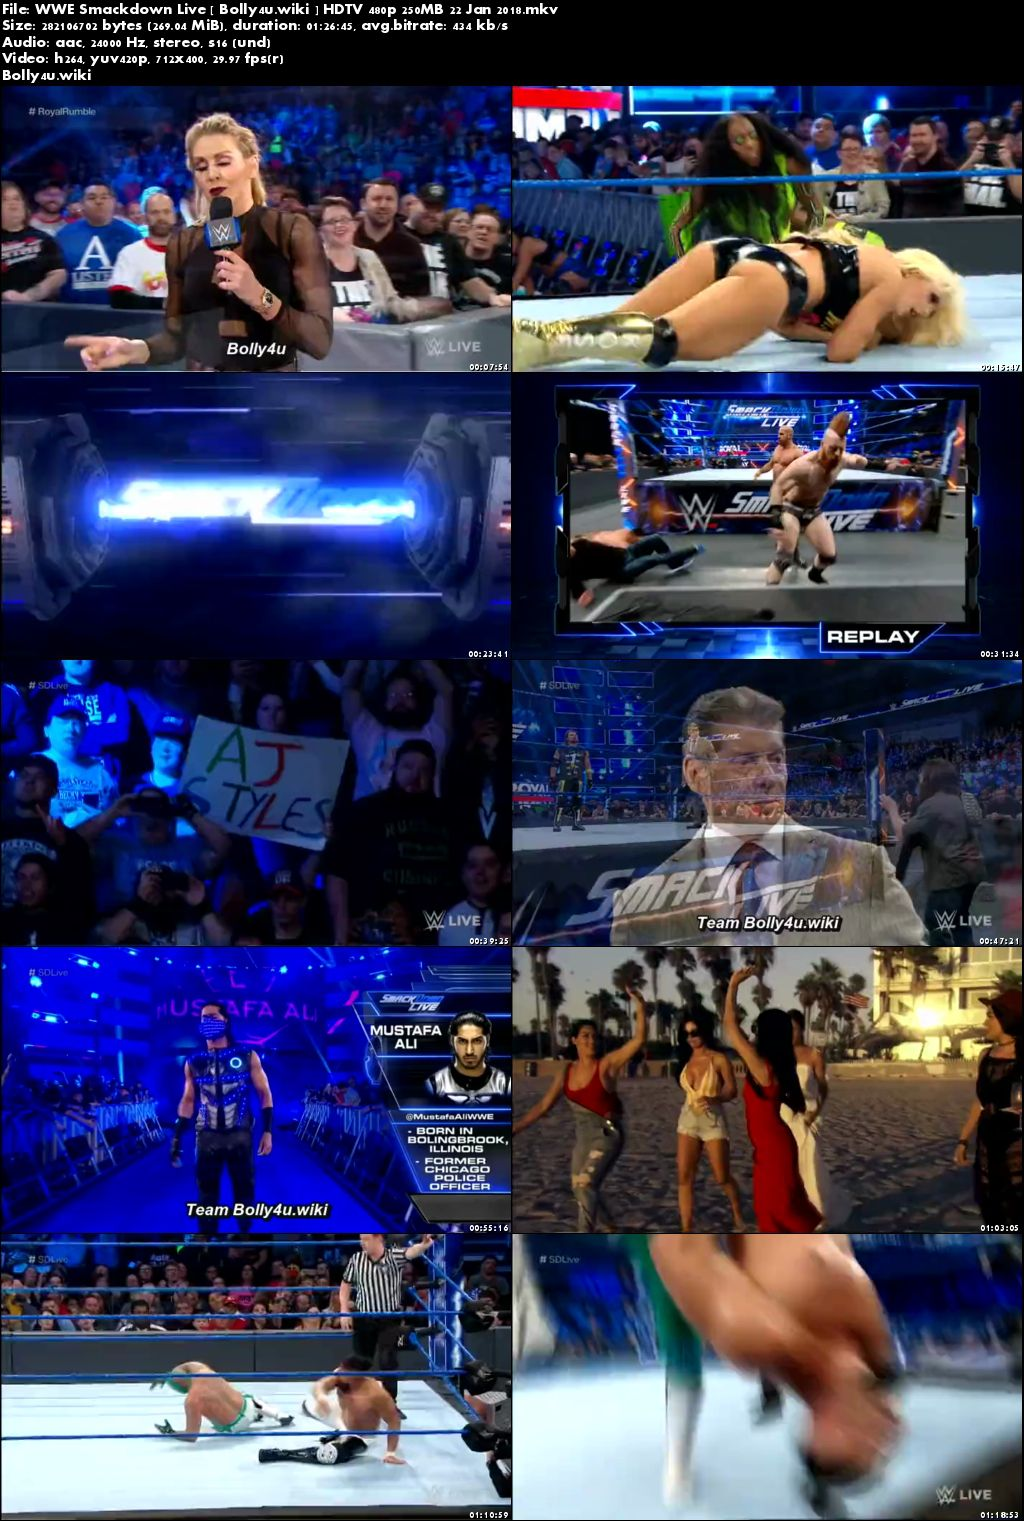 WWE Smackdown Live HDTV 480p 250MB 22 Jan 2018 Download